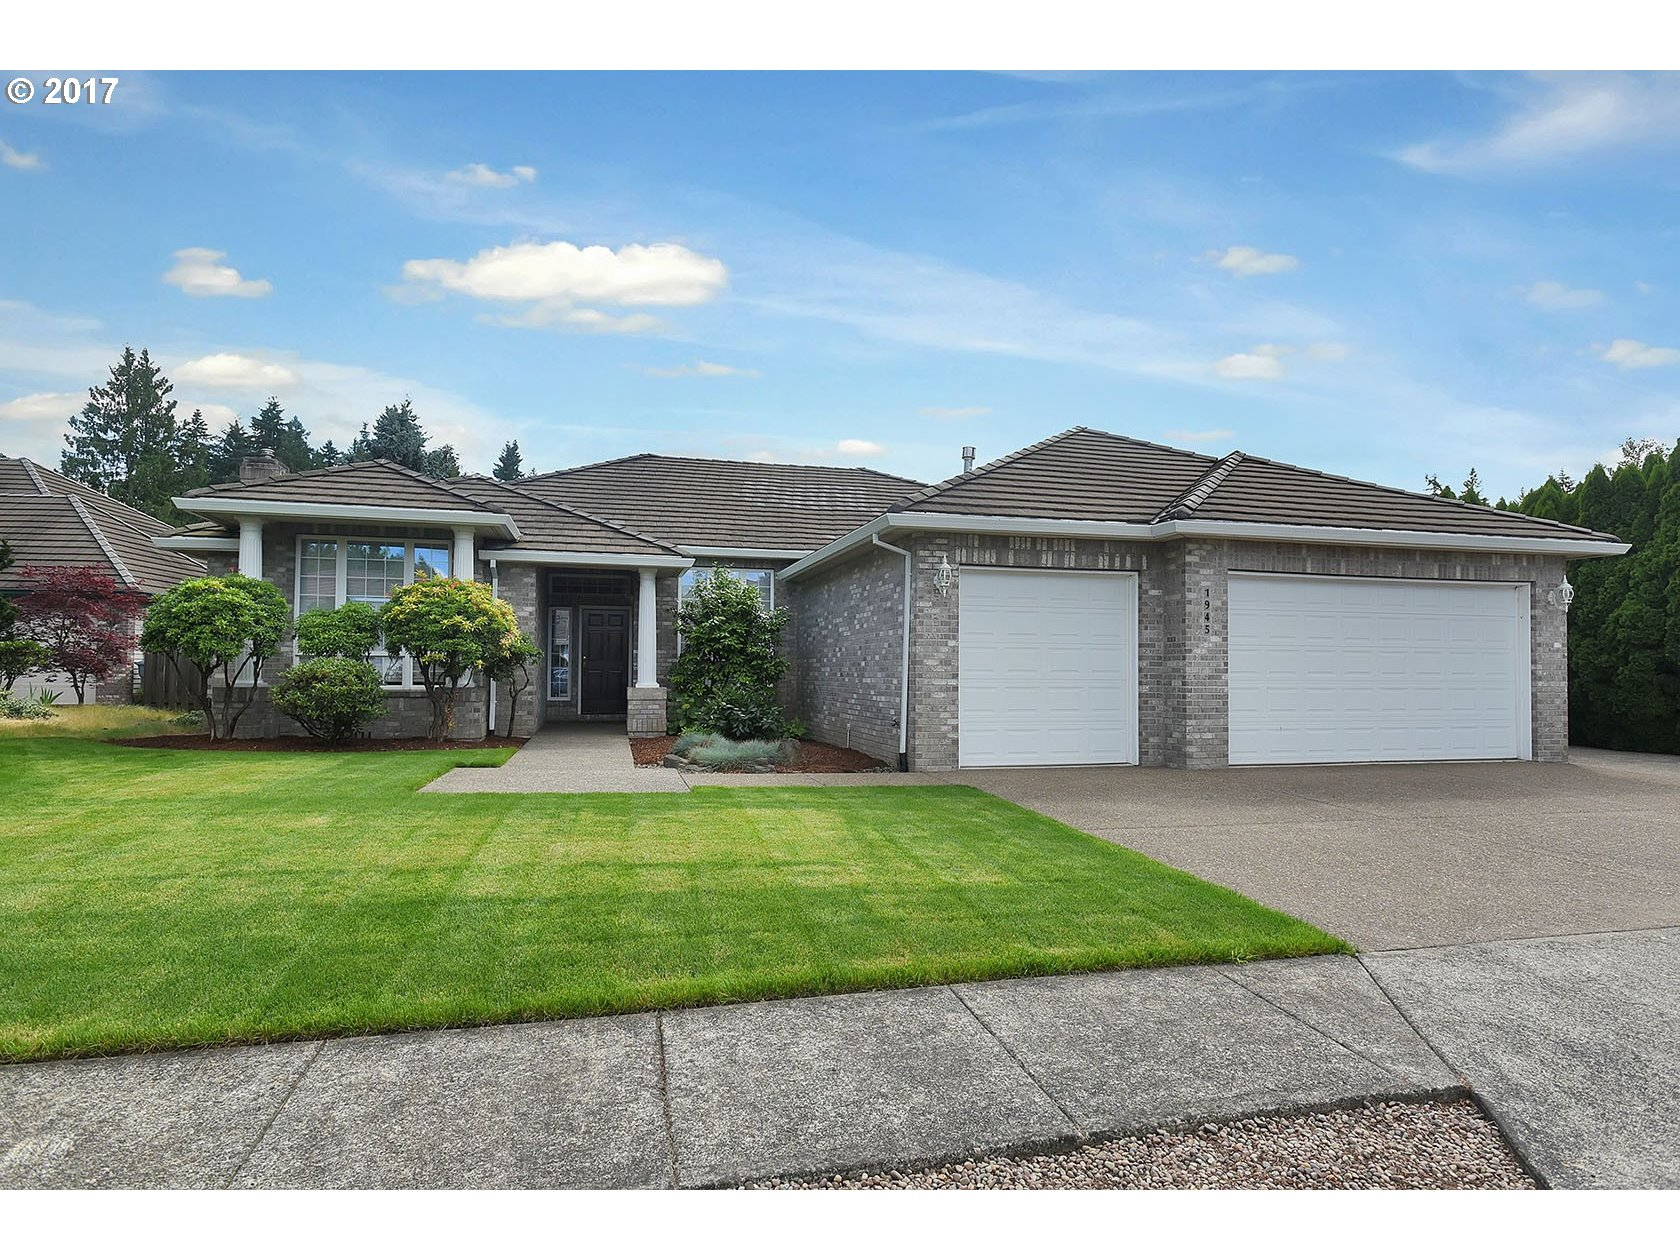 1945 NE 19TH AVE, Canby, OR 97013